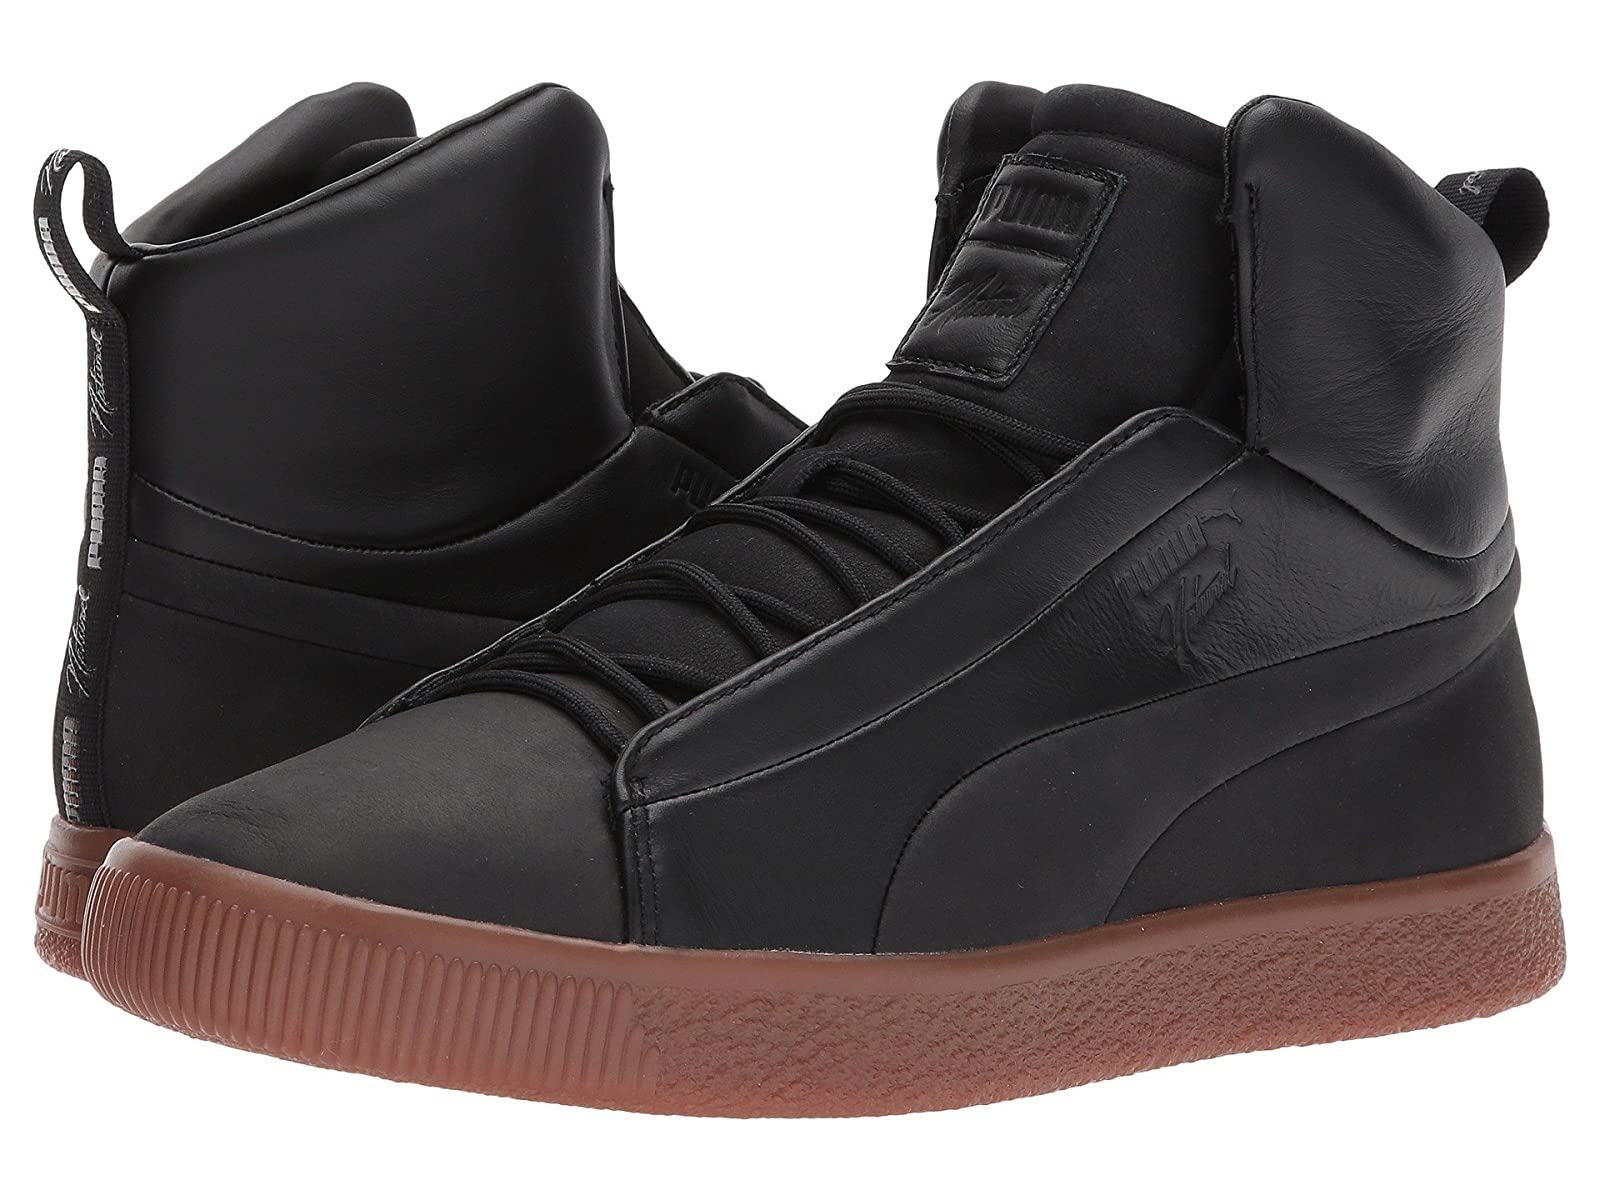 PUMA Puma x Naturel Clyde Fashion Mid SneakerAtmospheric grades have affordable shoes